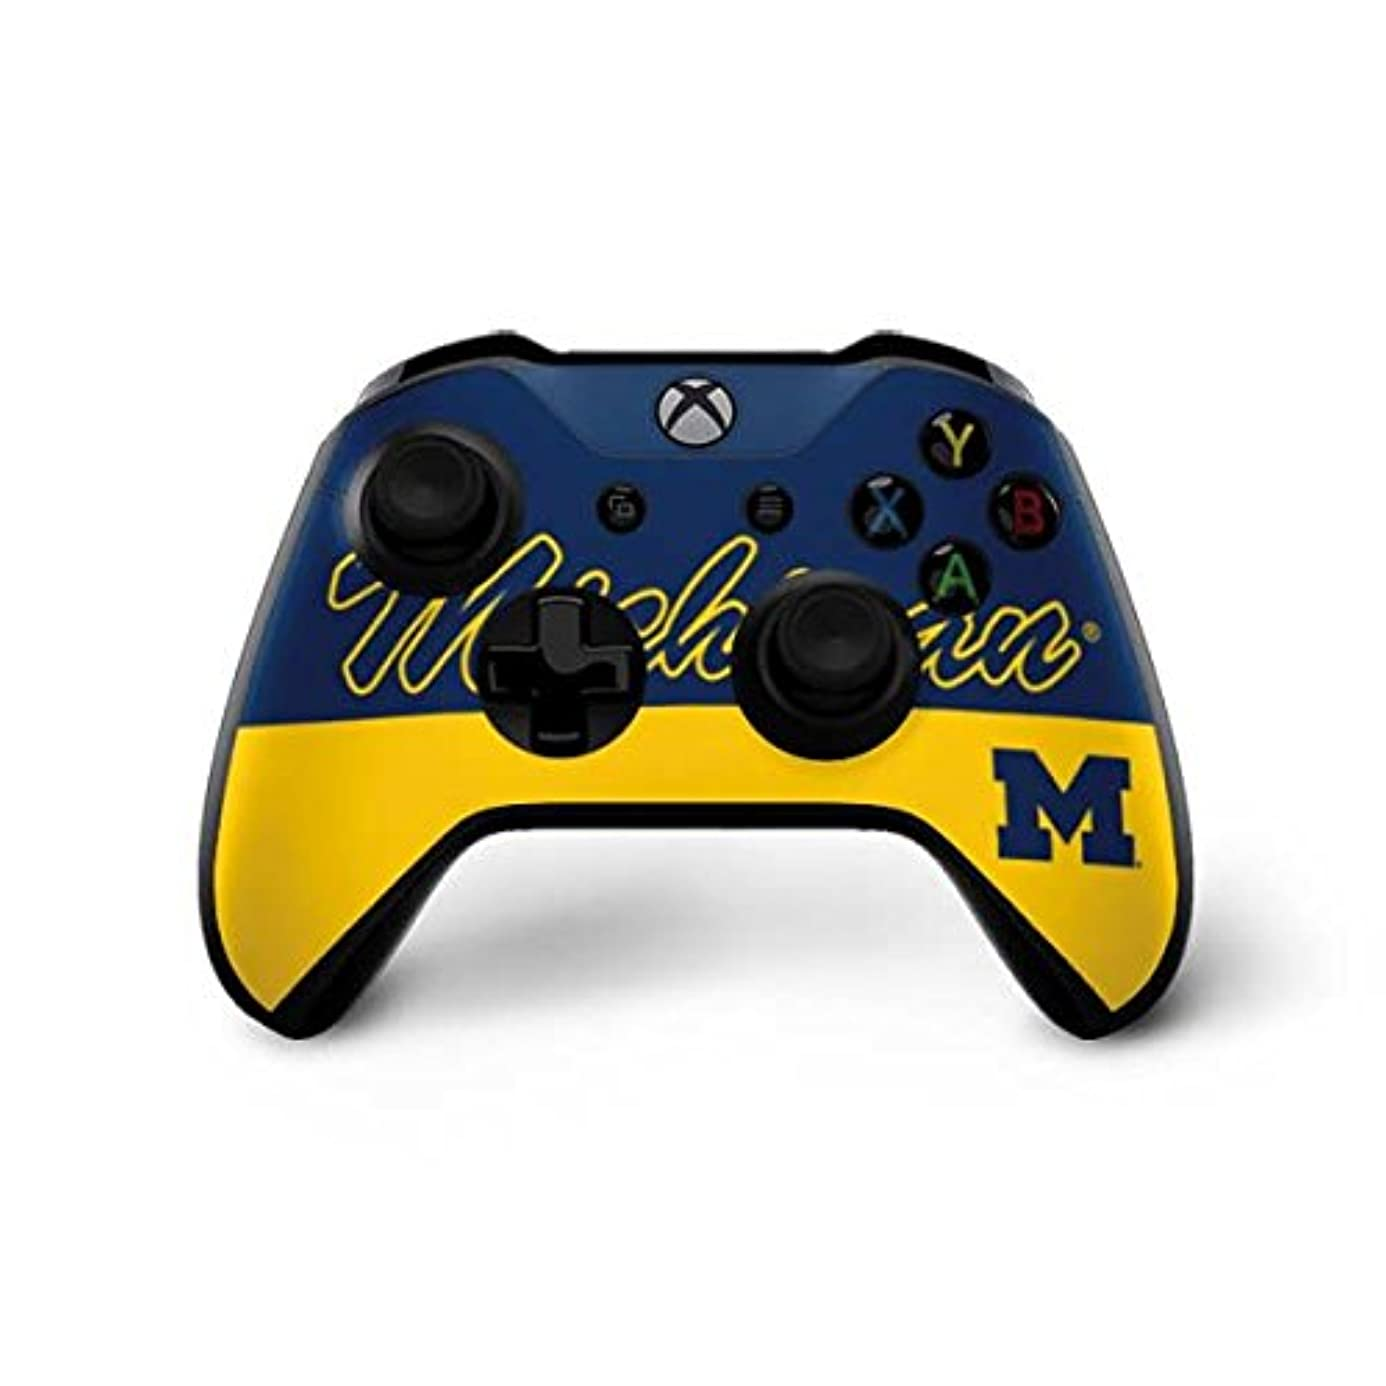 Skinit University of Michigan Split Xbox One X Controller Skin - Officially Licensed College Gaming Decal - Ultra Thin, Lightweight Vinyl Decal Protection